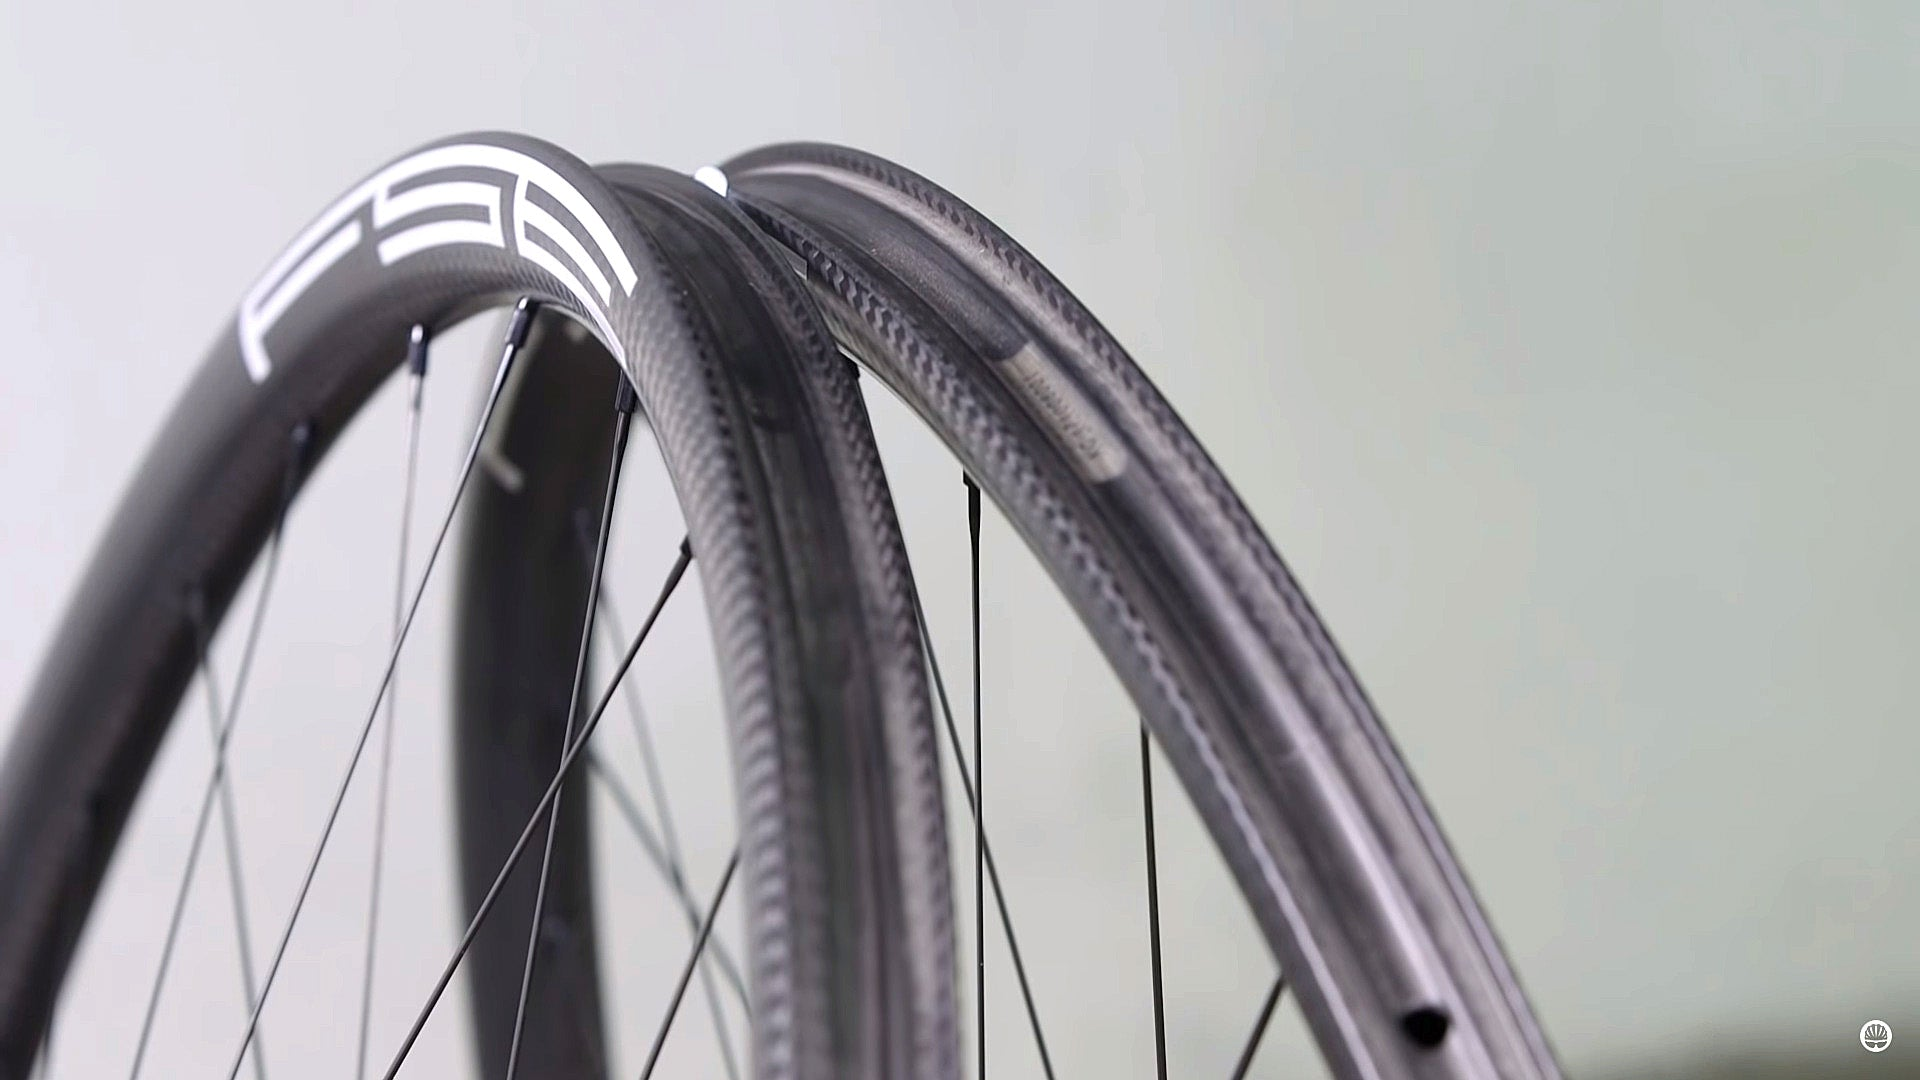 Bike Radar: The Lightest Mountain Bike Wheels You've Never Heard Of | FSE 30XC Extralite First Look 19,590 views